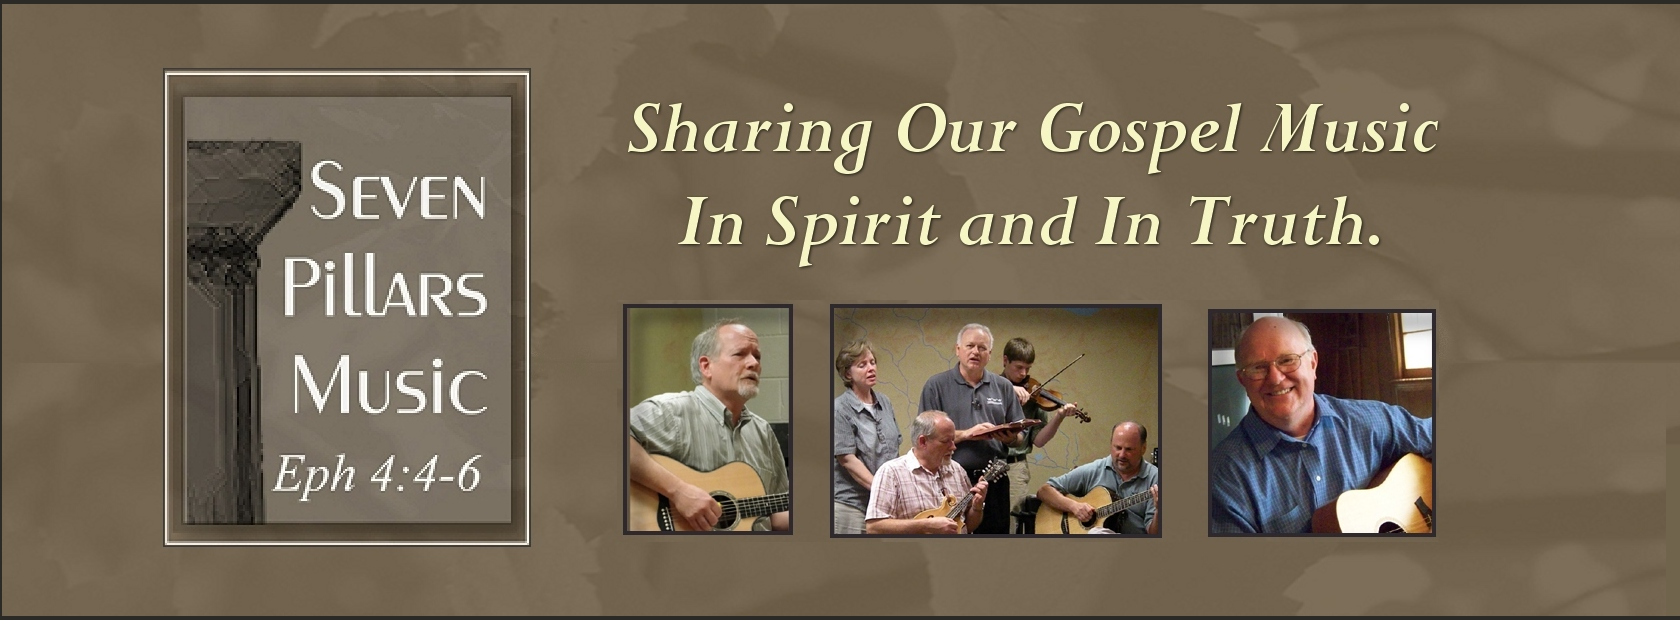 Seven Pillars Music.com - Spirit Filled Gospel Music